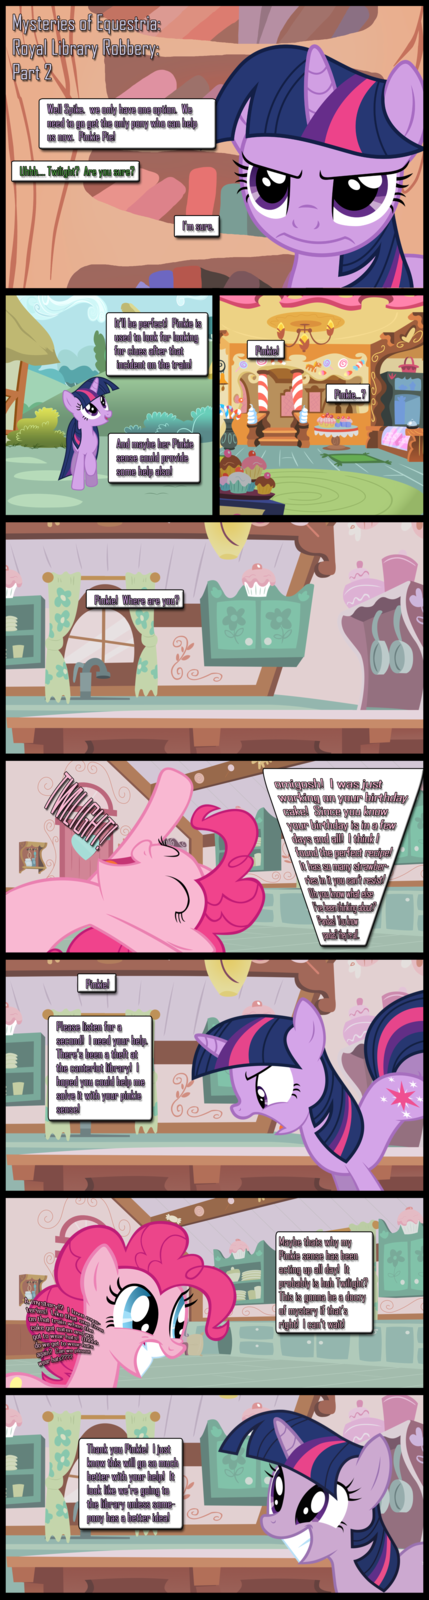 Mysteries of Equestria: Library Robbery: Part 2